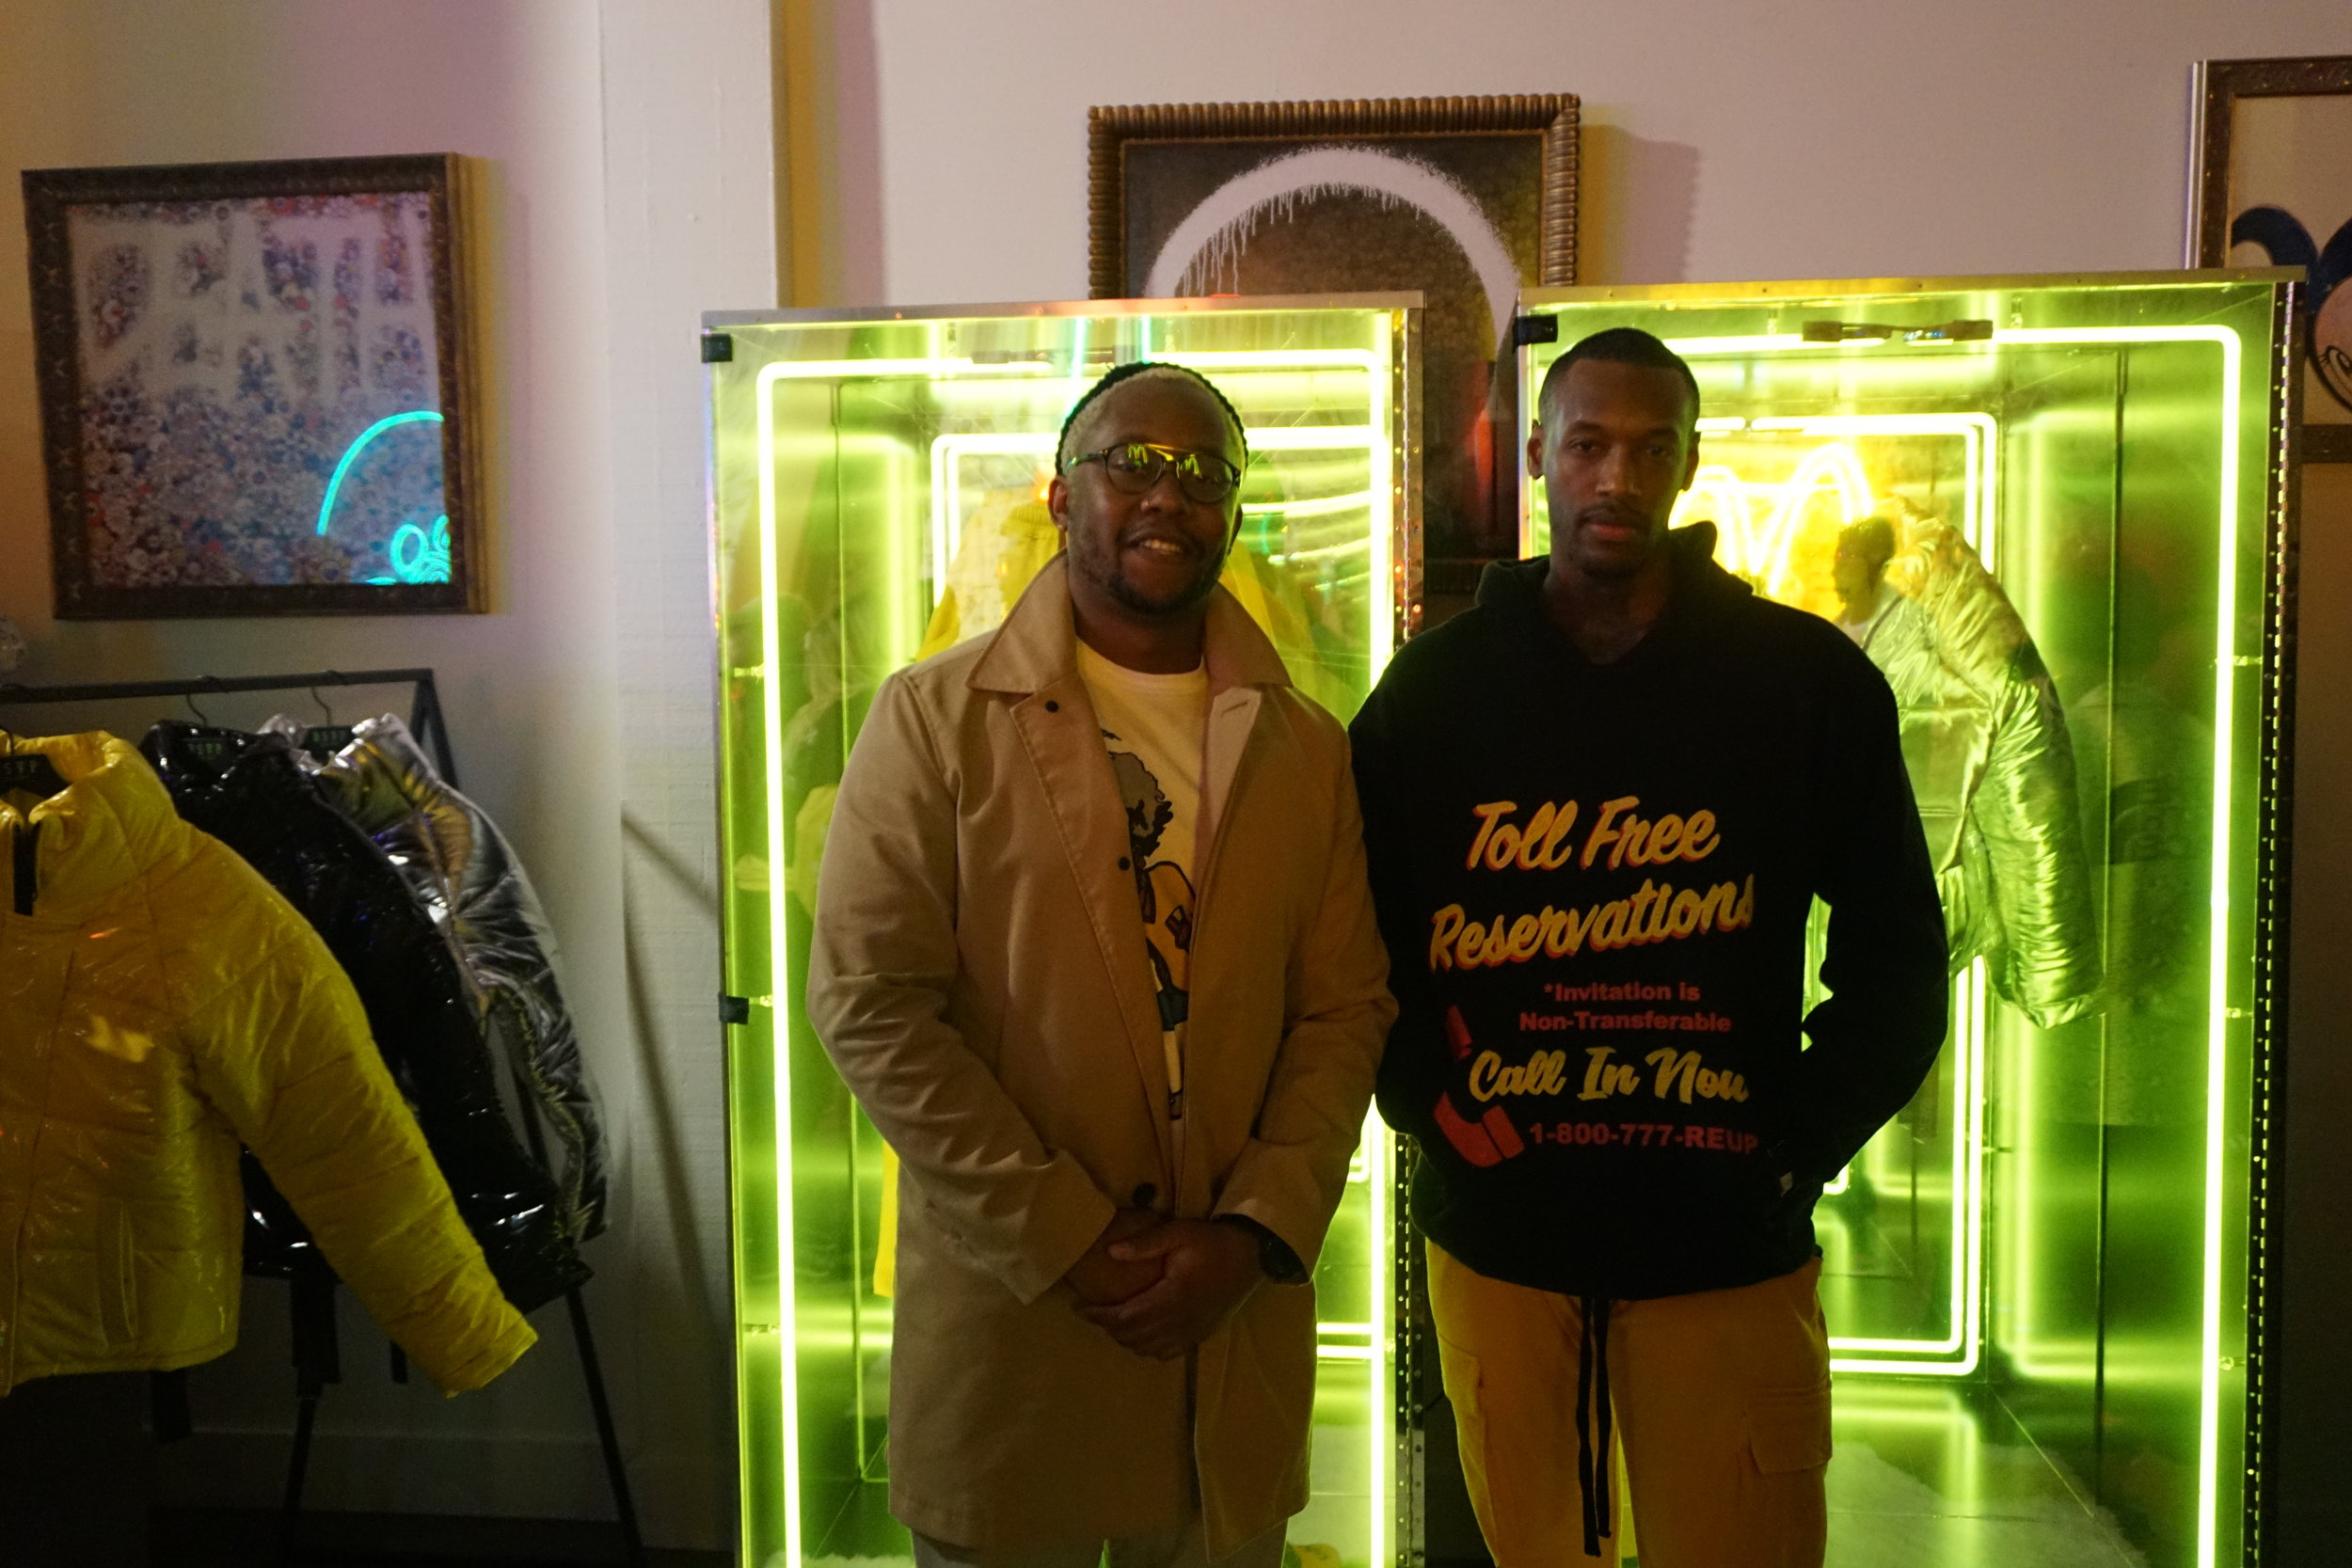 Thulani, founder of clothing line The Rad Black Kids, and Mateo Berry